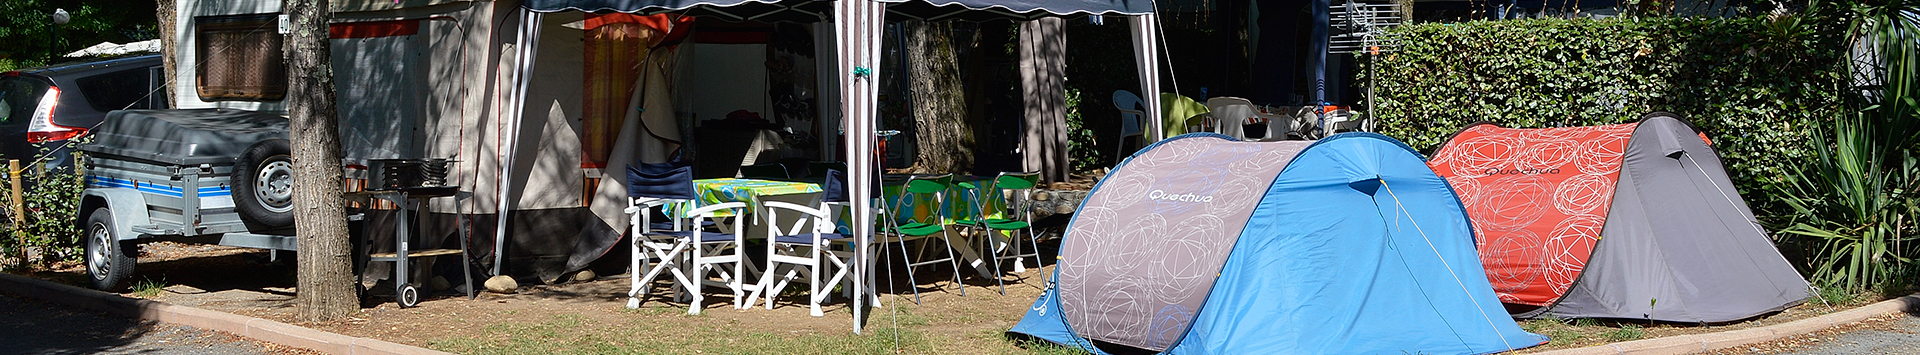 Emplacements - Camping Le Grillou